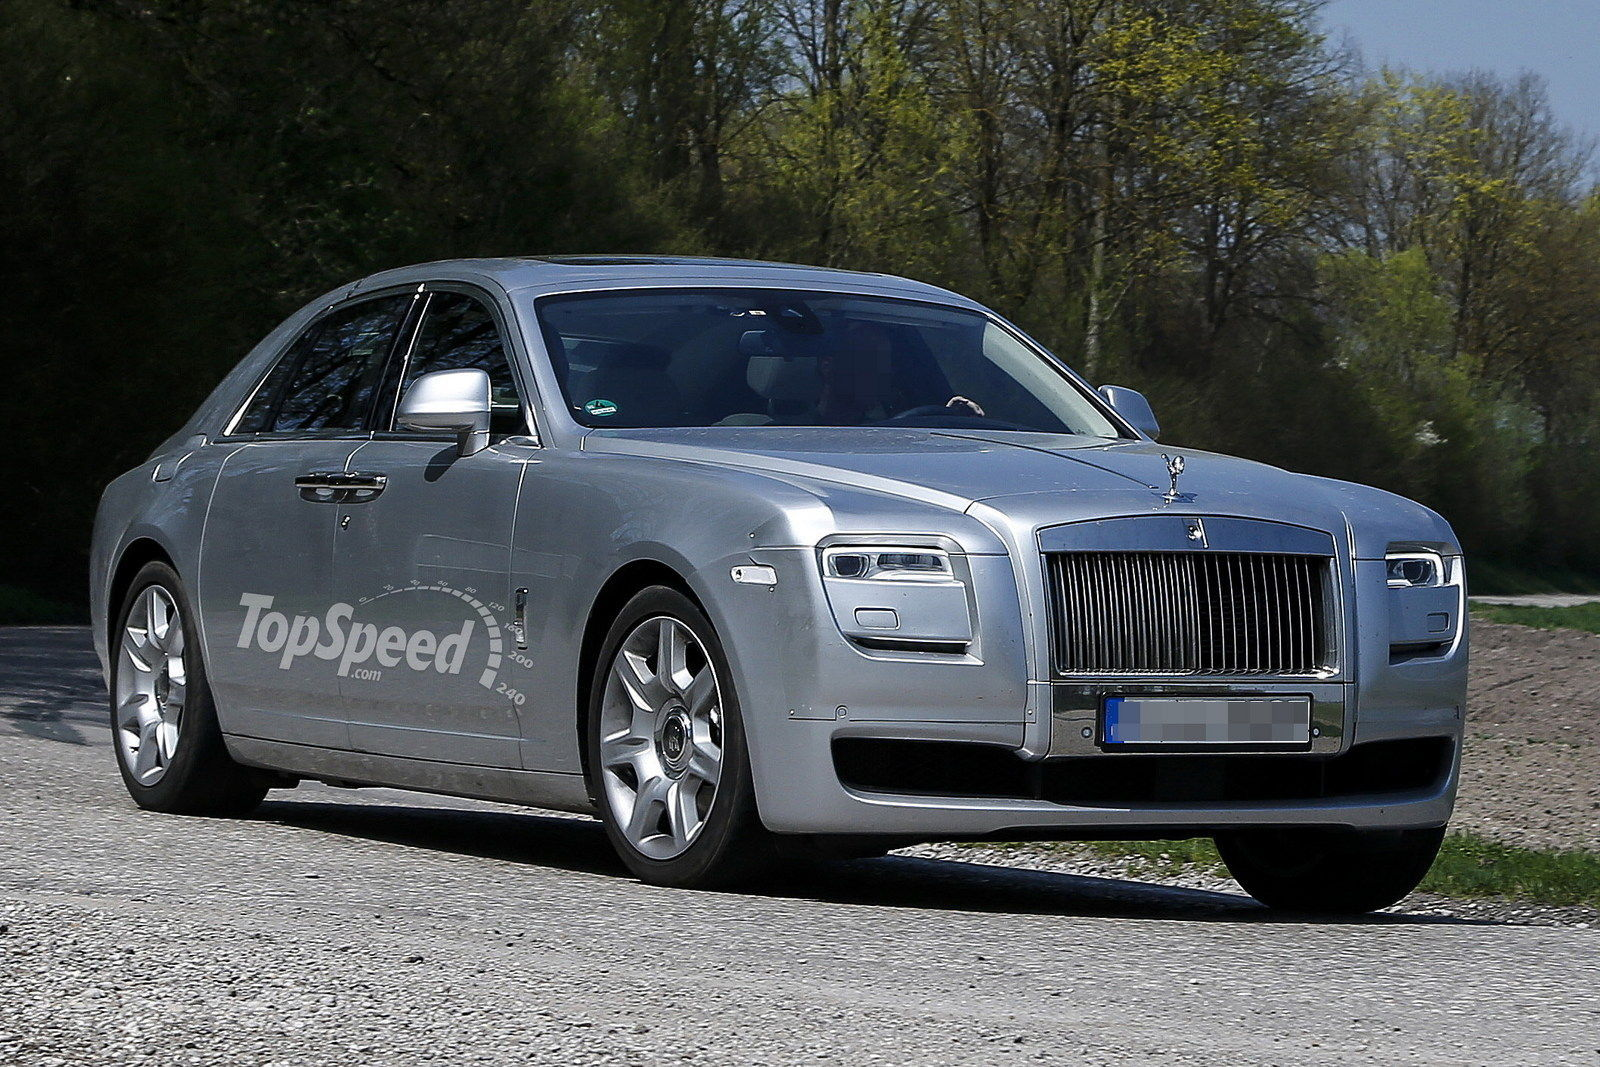 2014 Rolls royce Ghost #4